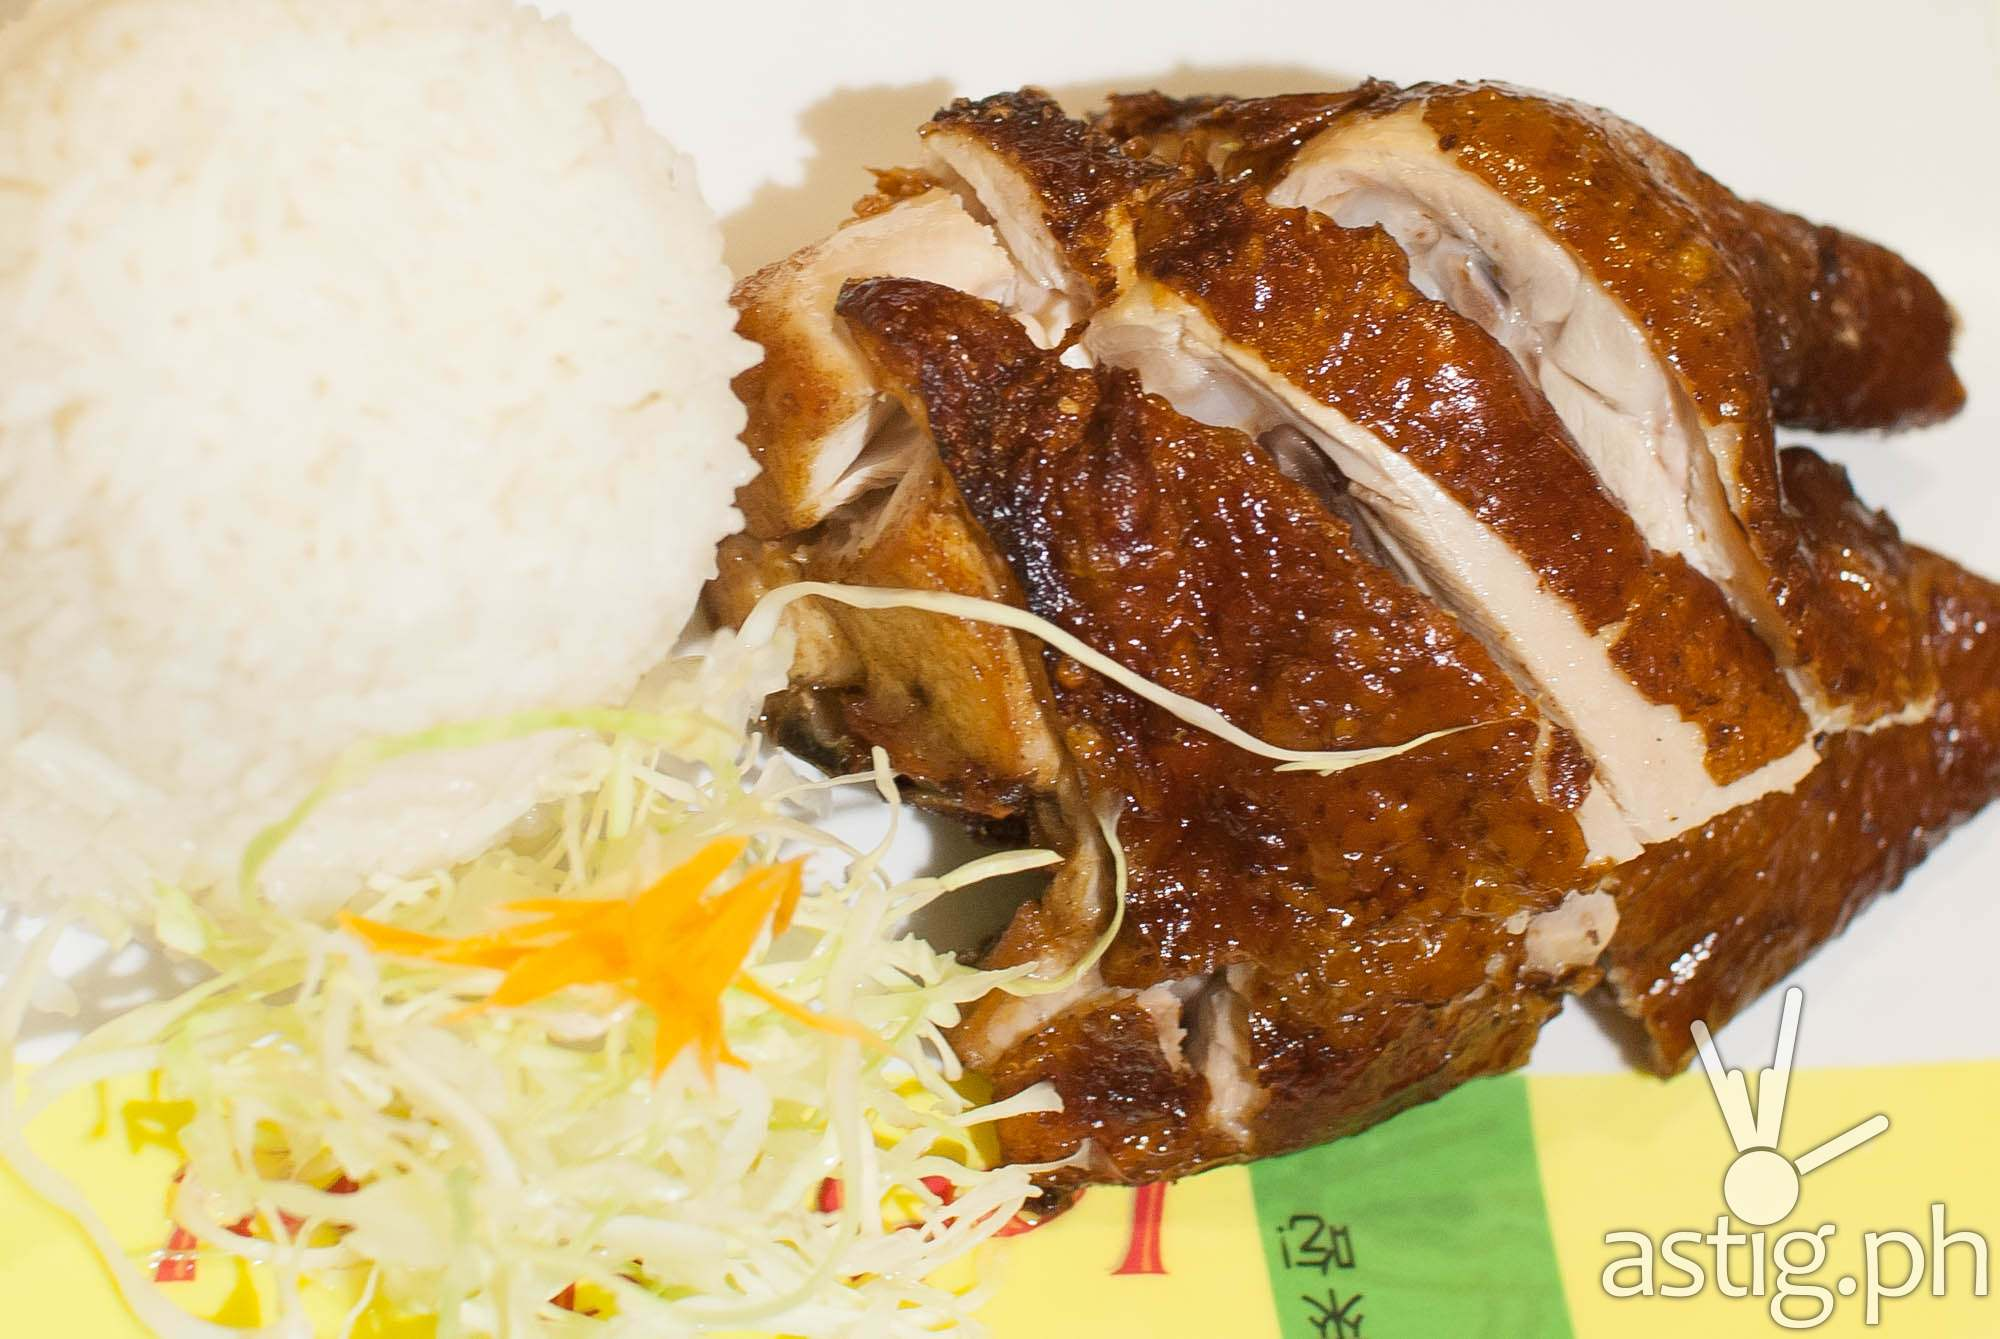 Chinese Fried Chicken with Rice - Let's Chow Rice and Noodle Haus restaurant Makati Cinema Square